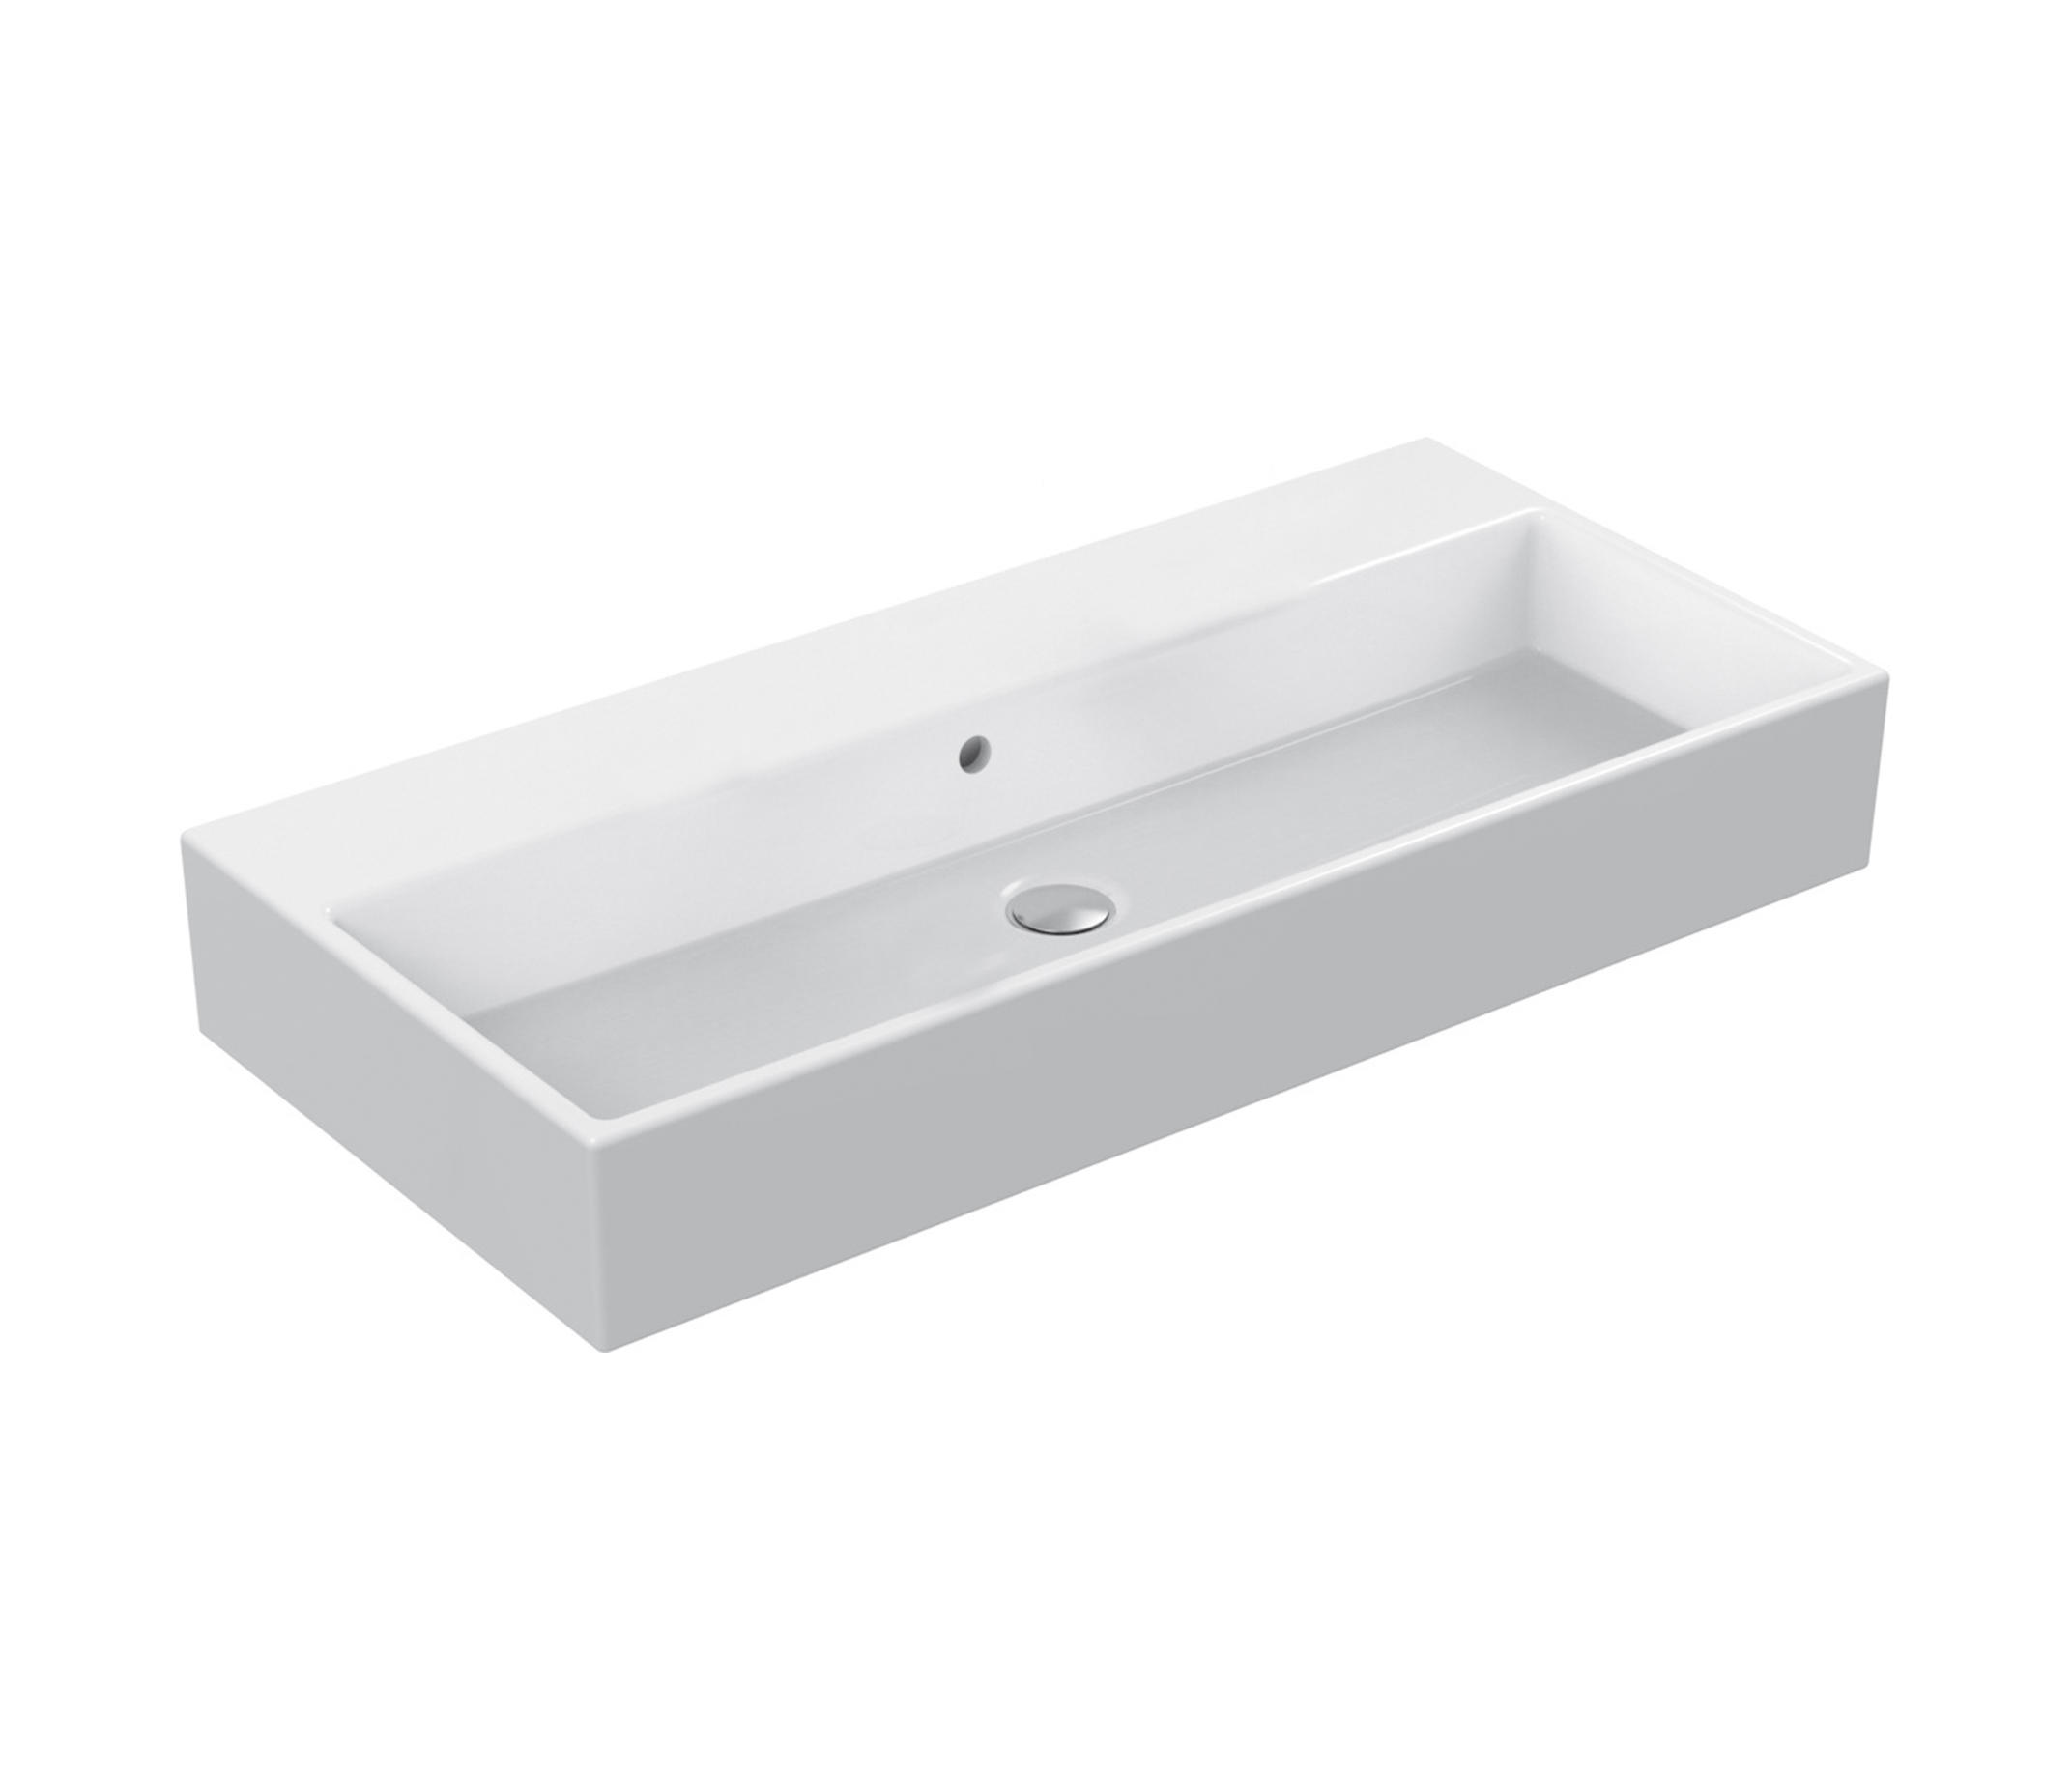 strada waschtisch 910mm ohne hahnloch wash basins from ideal standard architonic. Black Bedroom Furniture Sets. Home Design Ideas